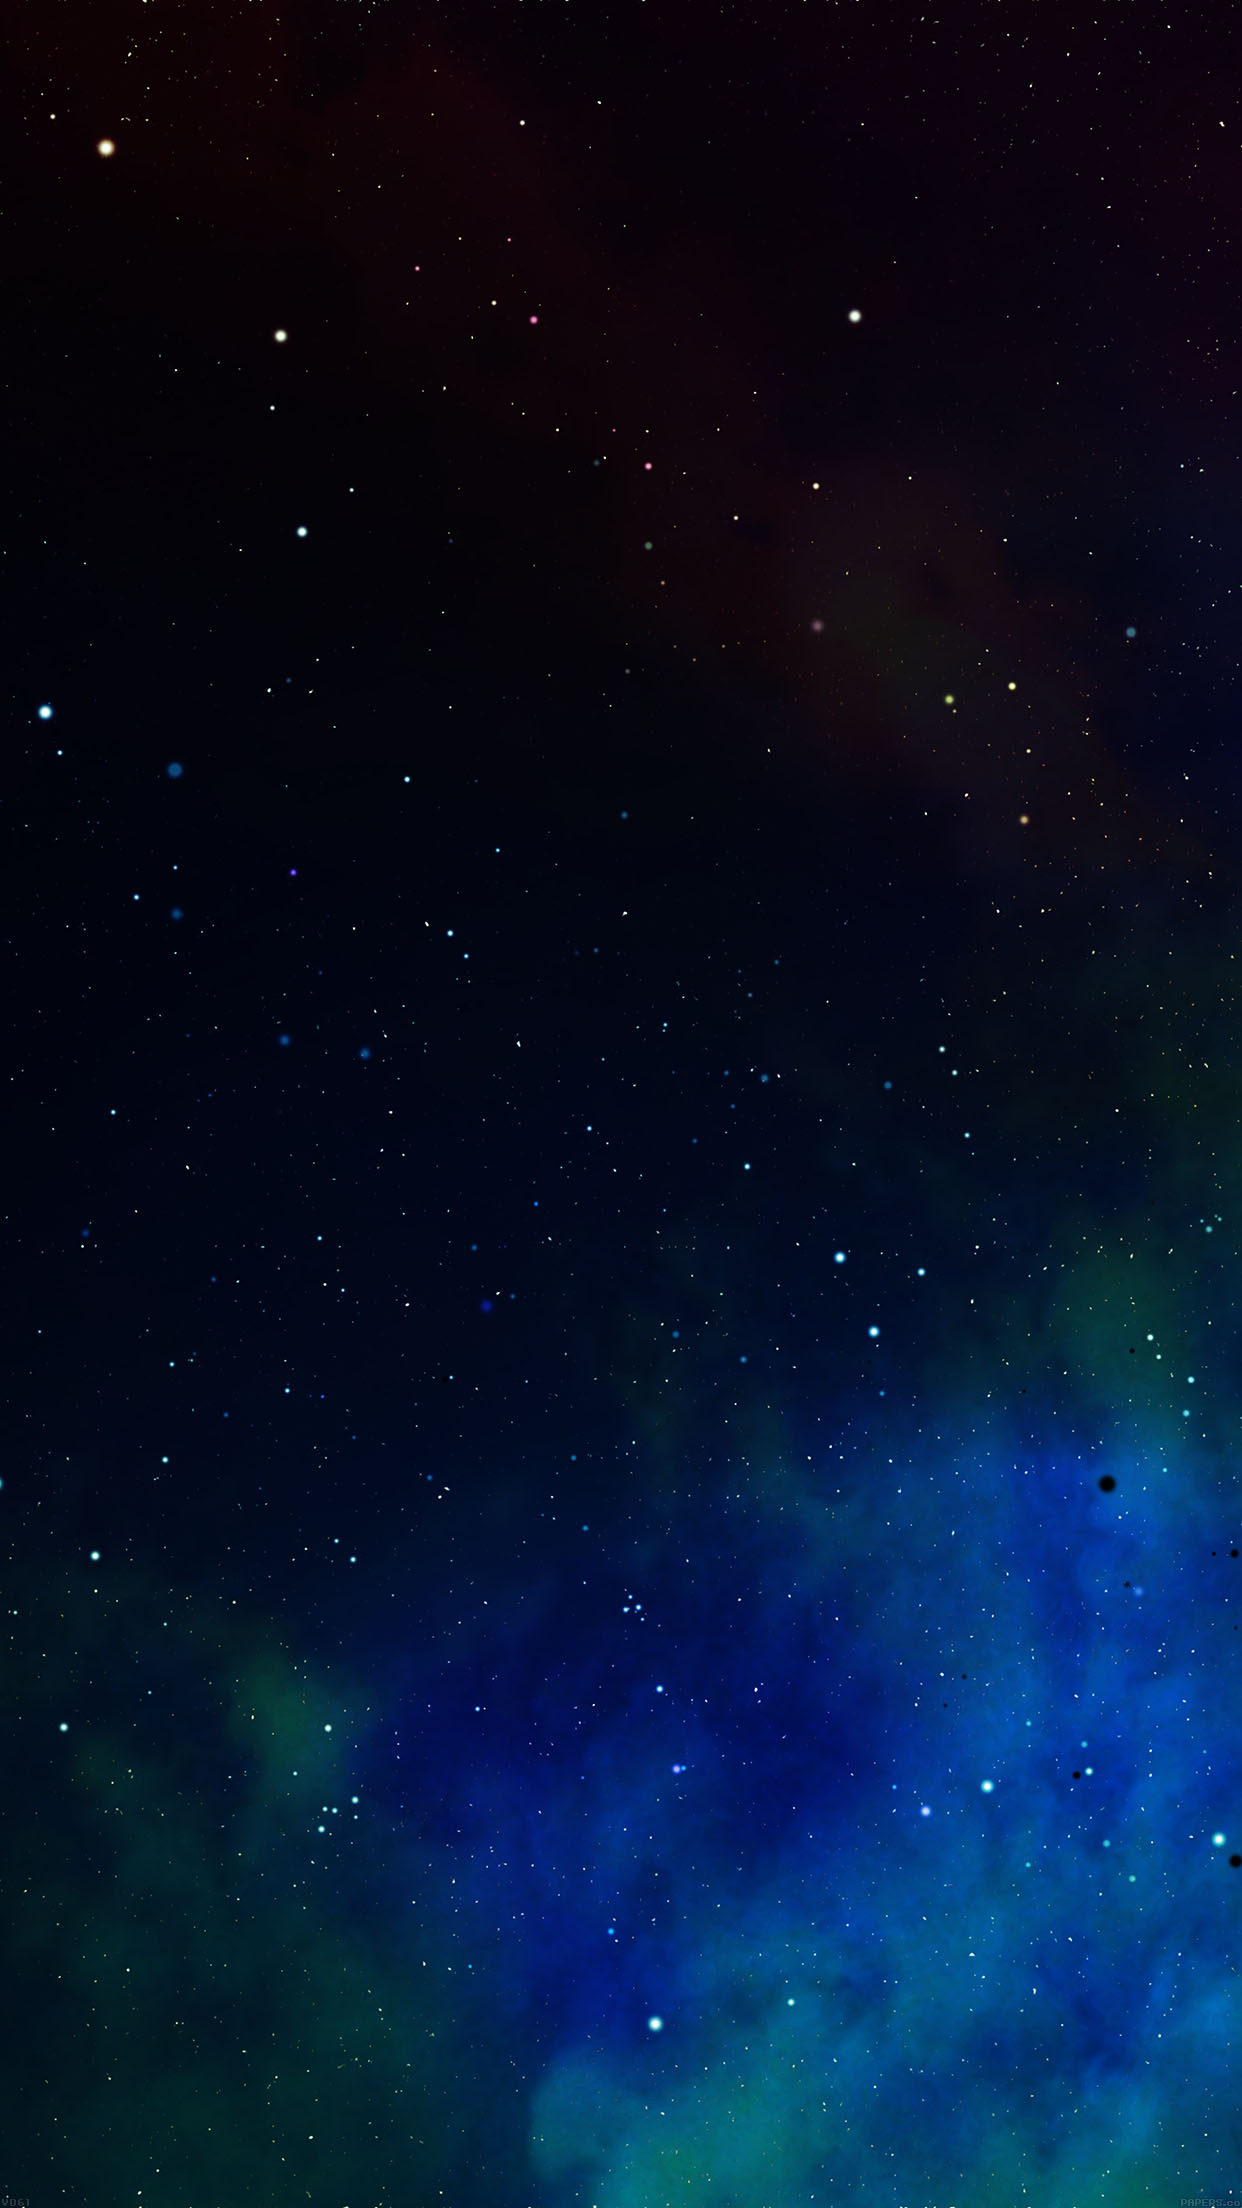 Frontier Iphone Space Colorful Star Nebula Android wallpaper